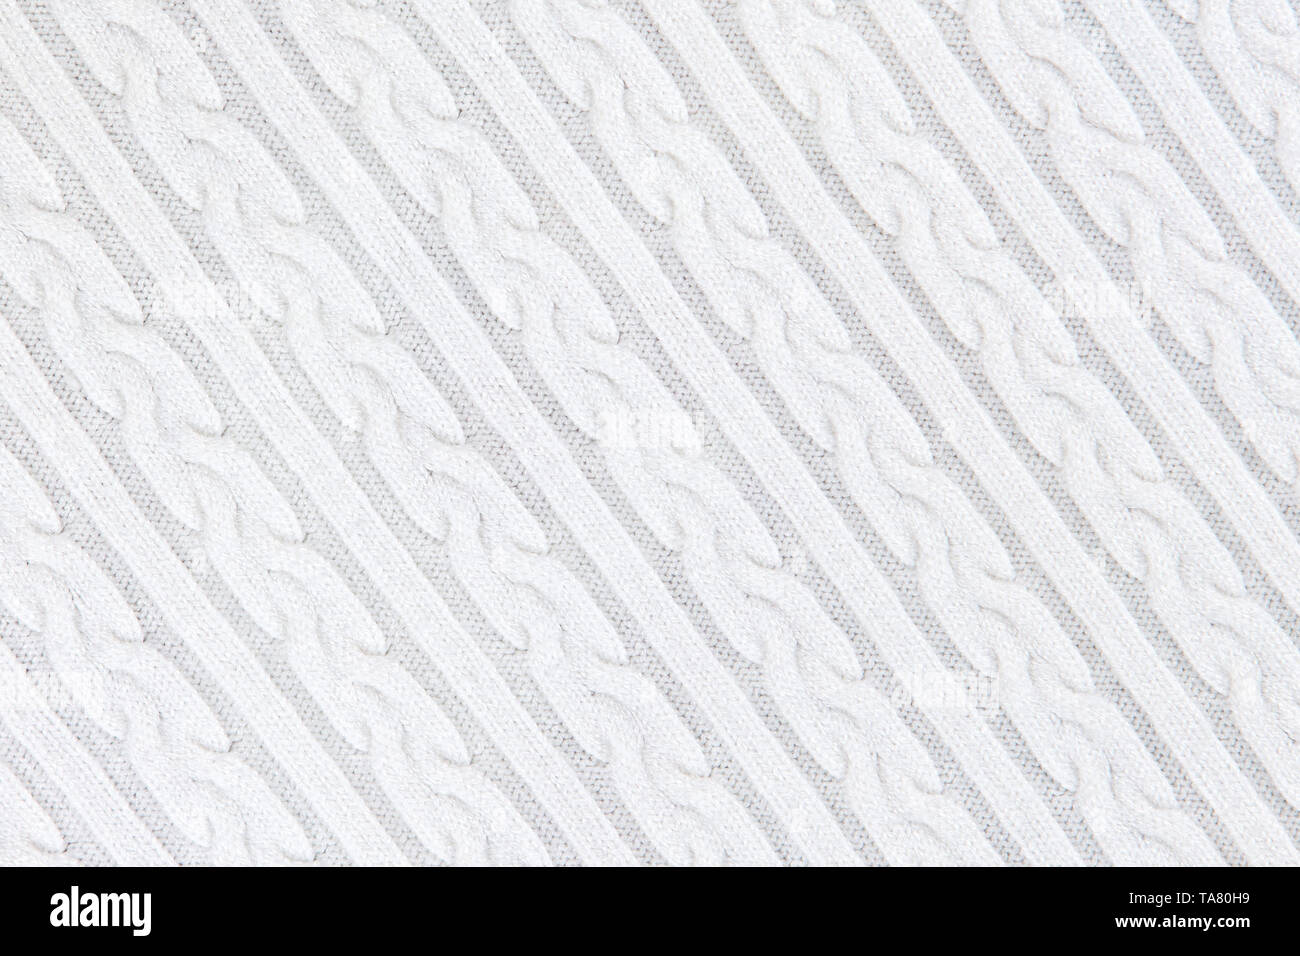 Knitwear Fabric Texture with Pigtails and stripes. Repeating Machine Knitting Texture of Sweater. White Knitted Background. Diagonal composition. - Stock Image